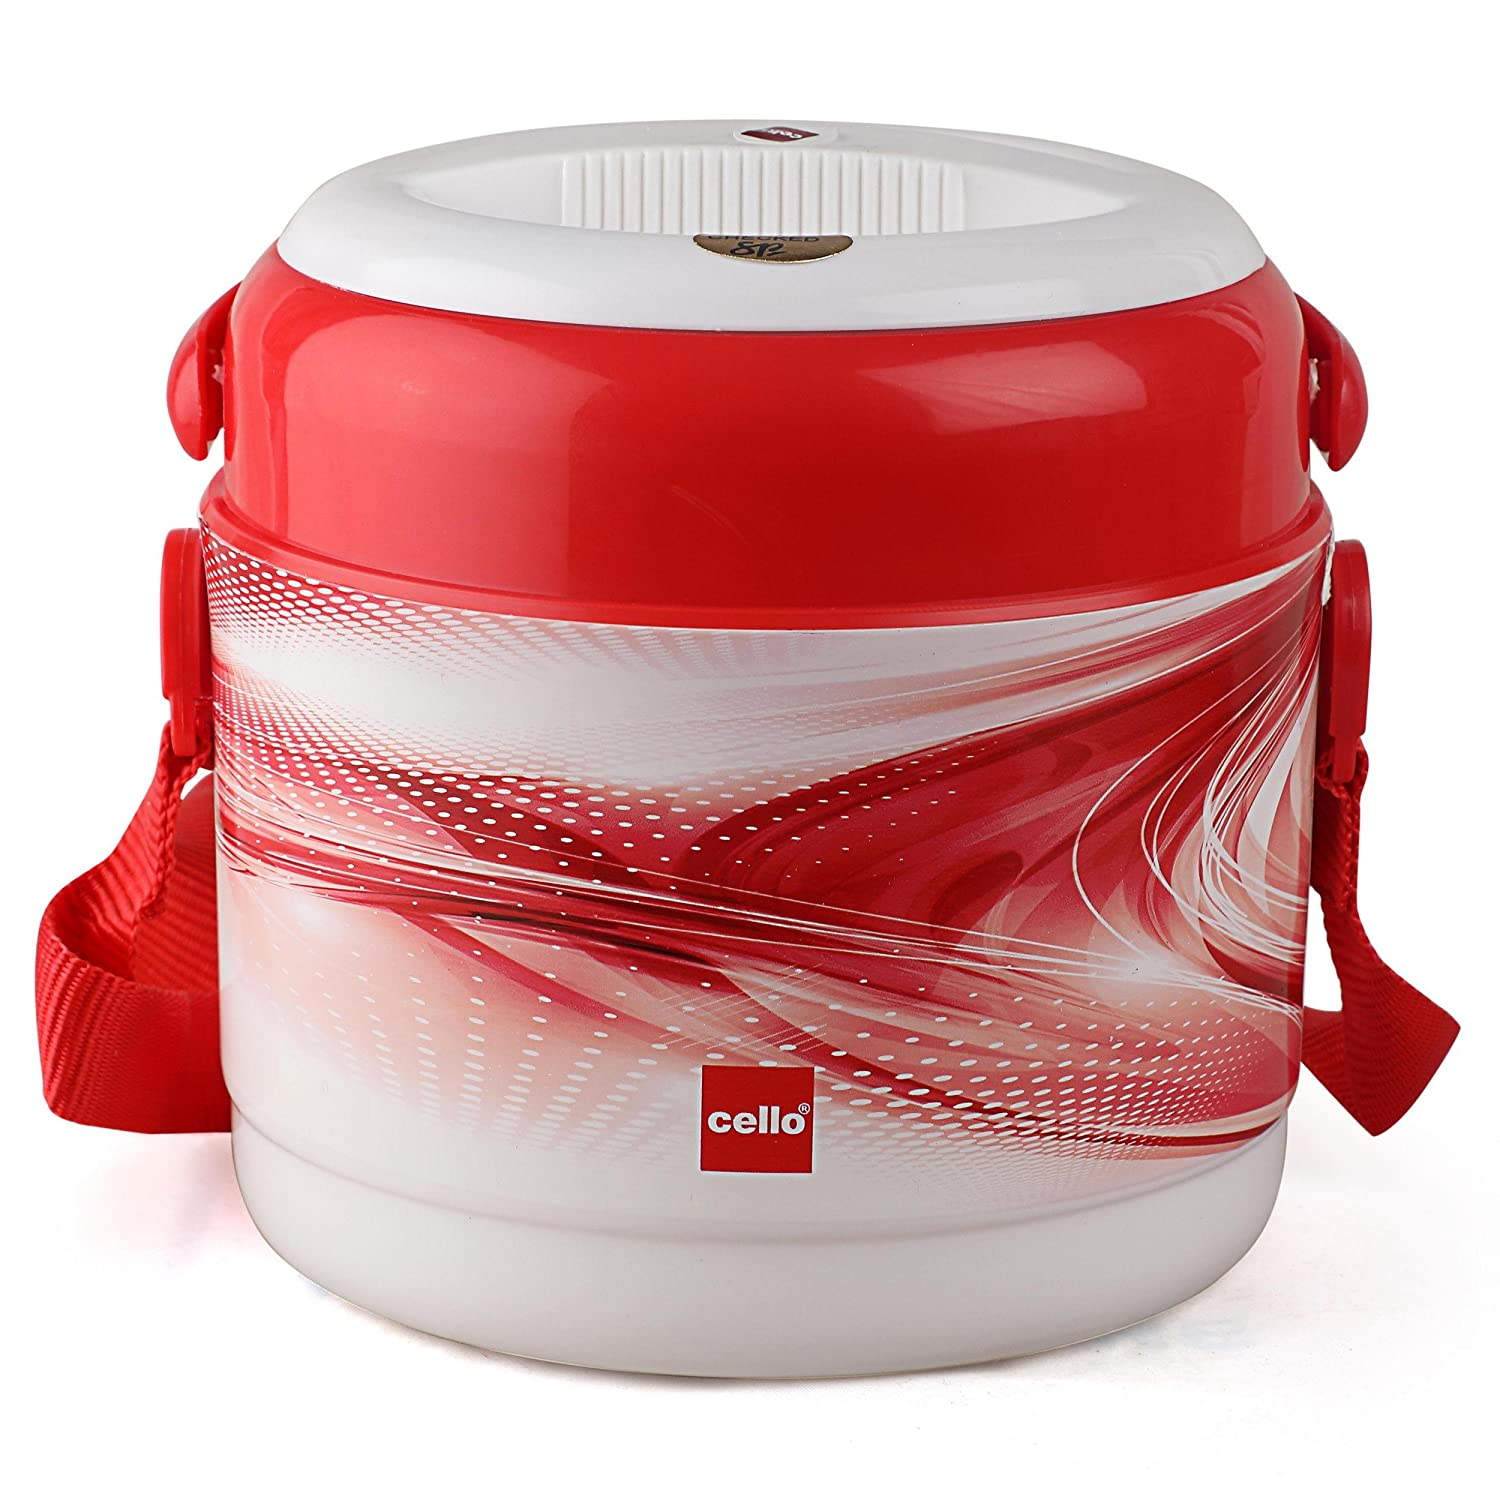 Cello Mark 2 Plastic Lunch Box Set, 390ml, Set of 2, Red